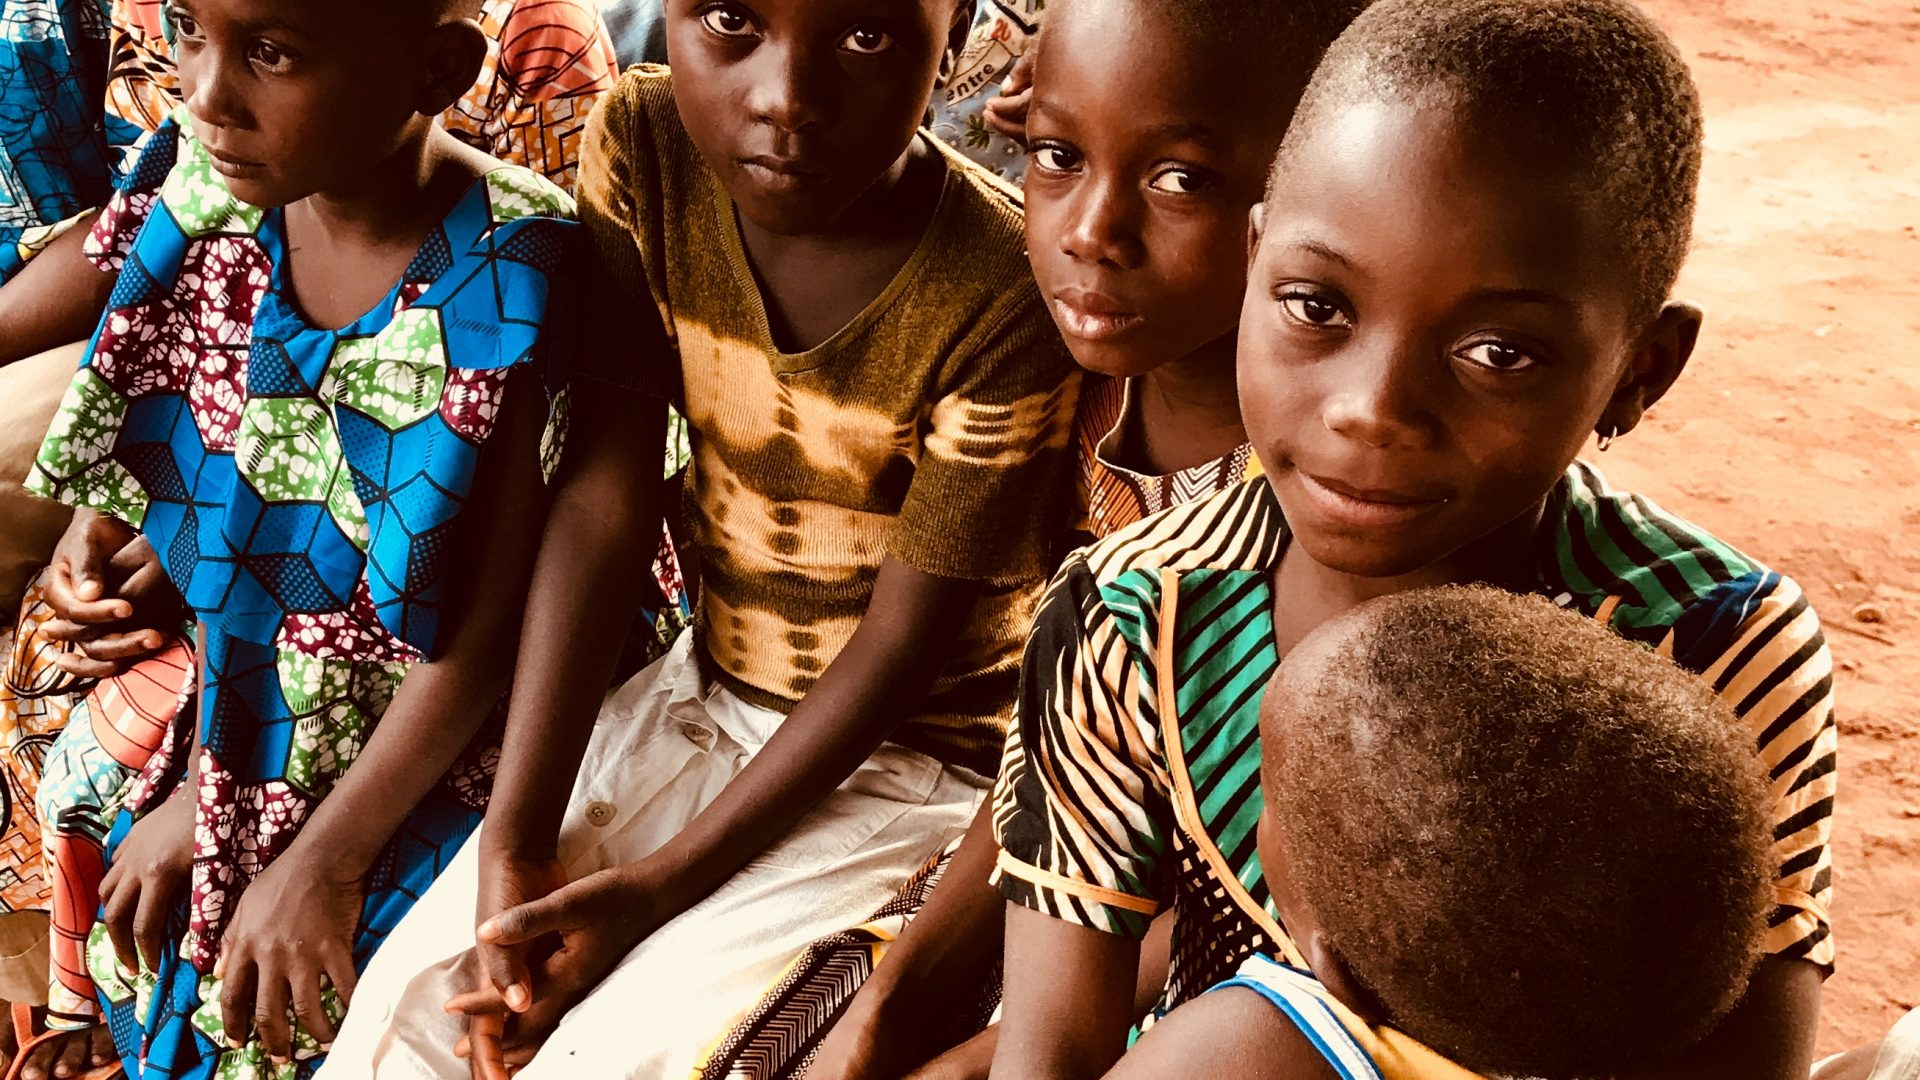 11. Community integration and education for orphans and destitue children in rural areas of Togo